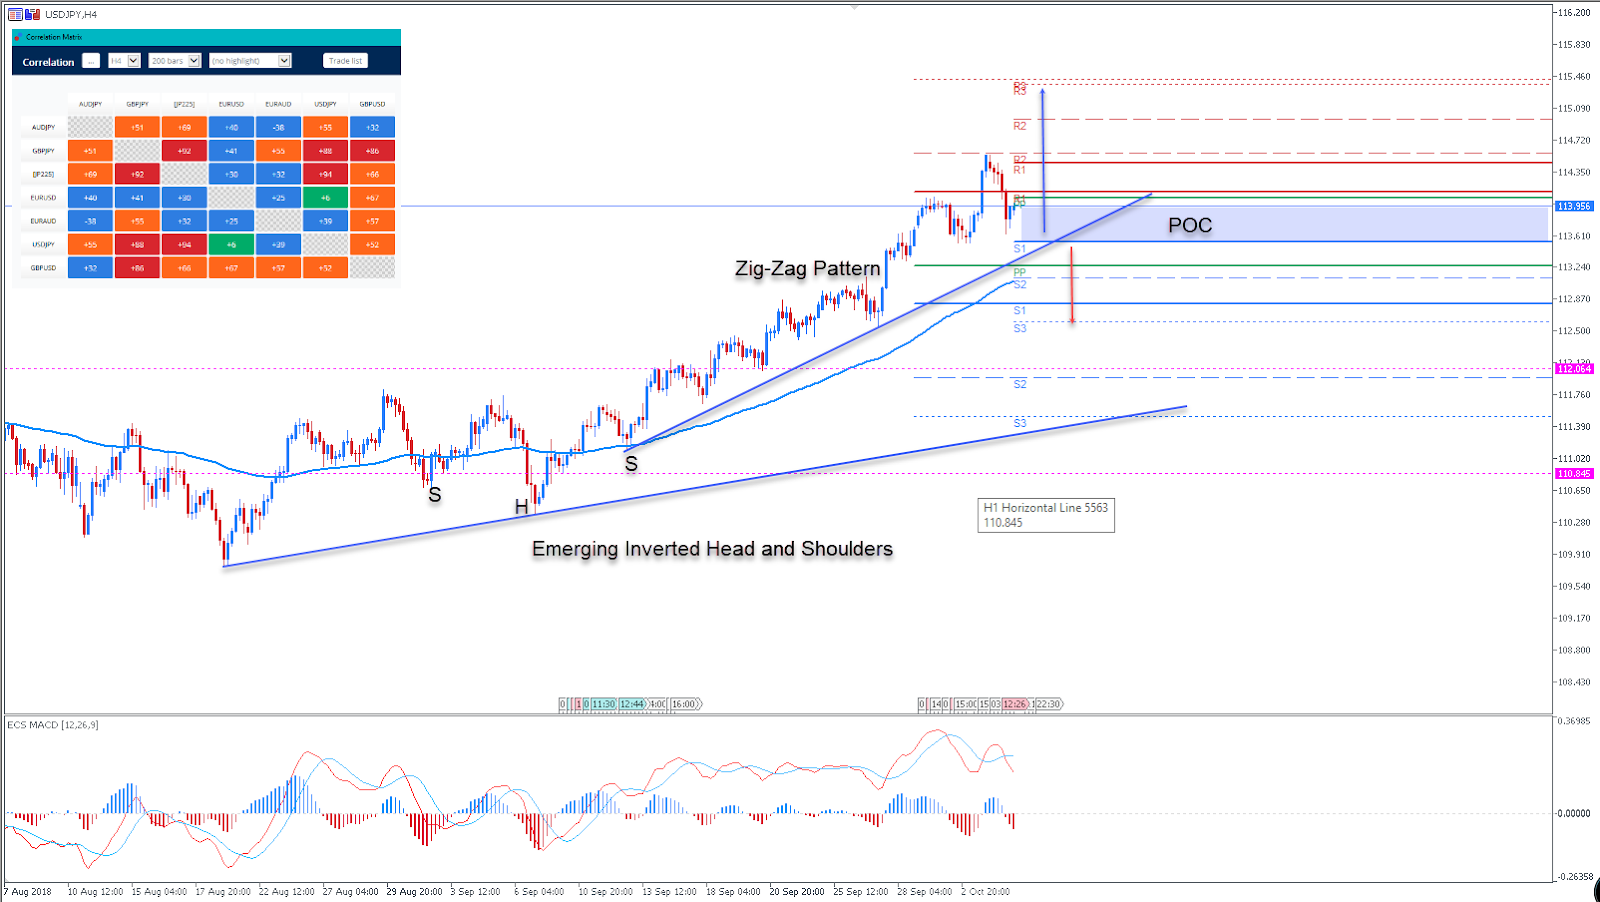 USDJPY Chart - Technical Analysis